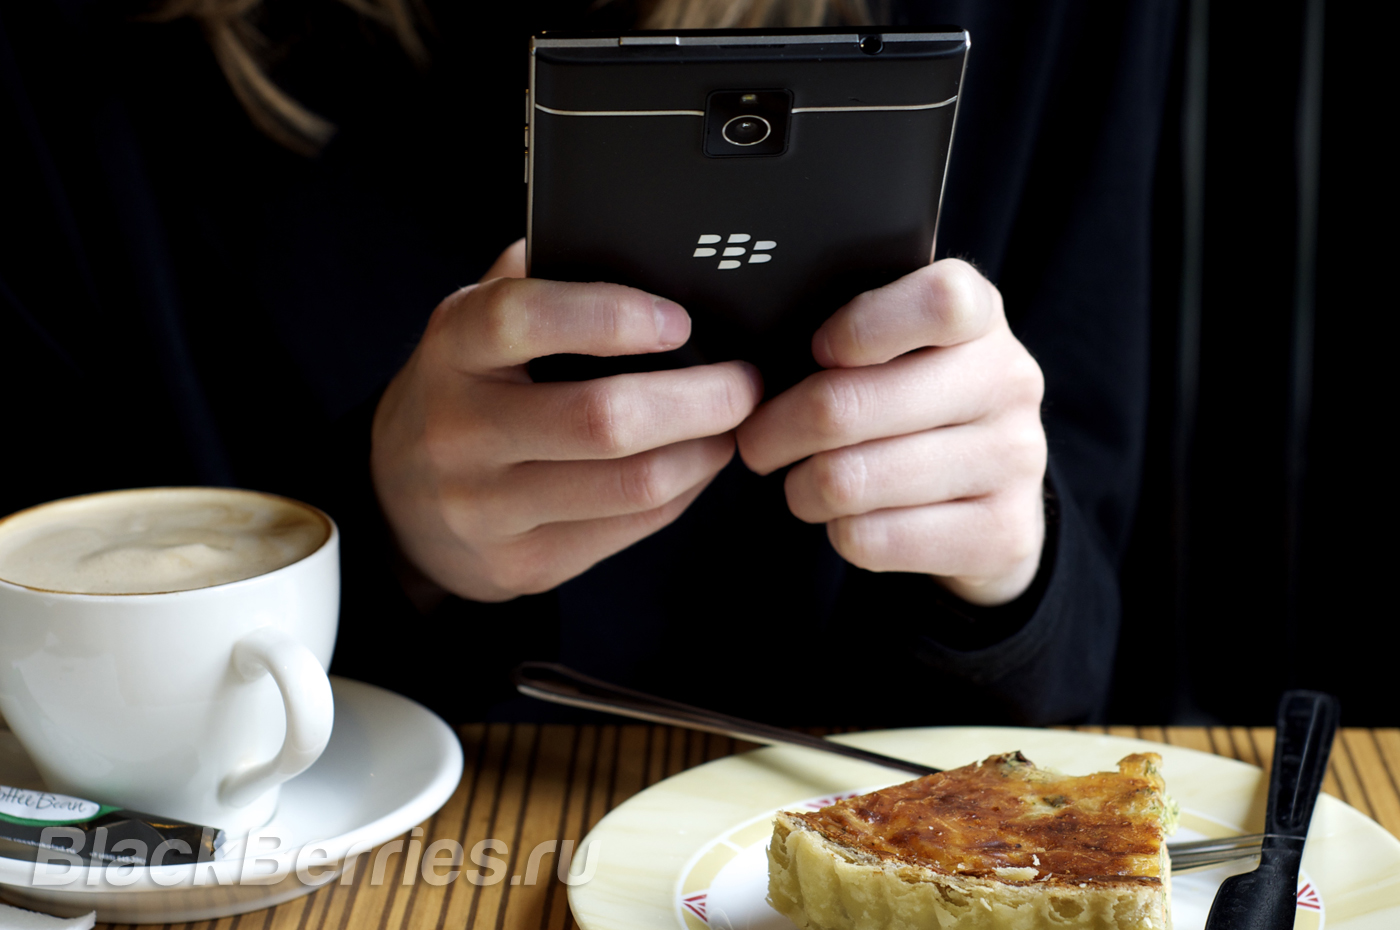 BlackBerry Passport Girl